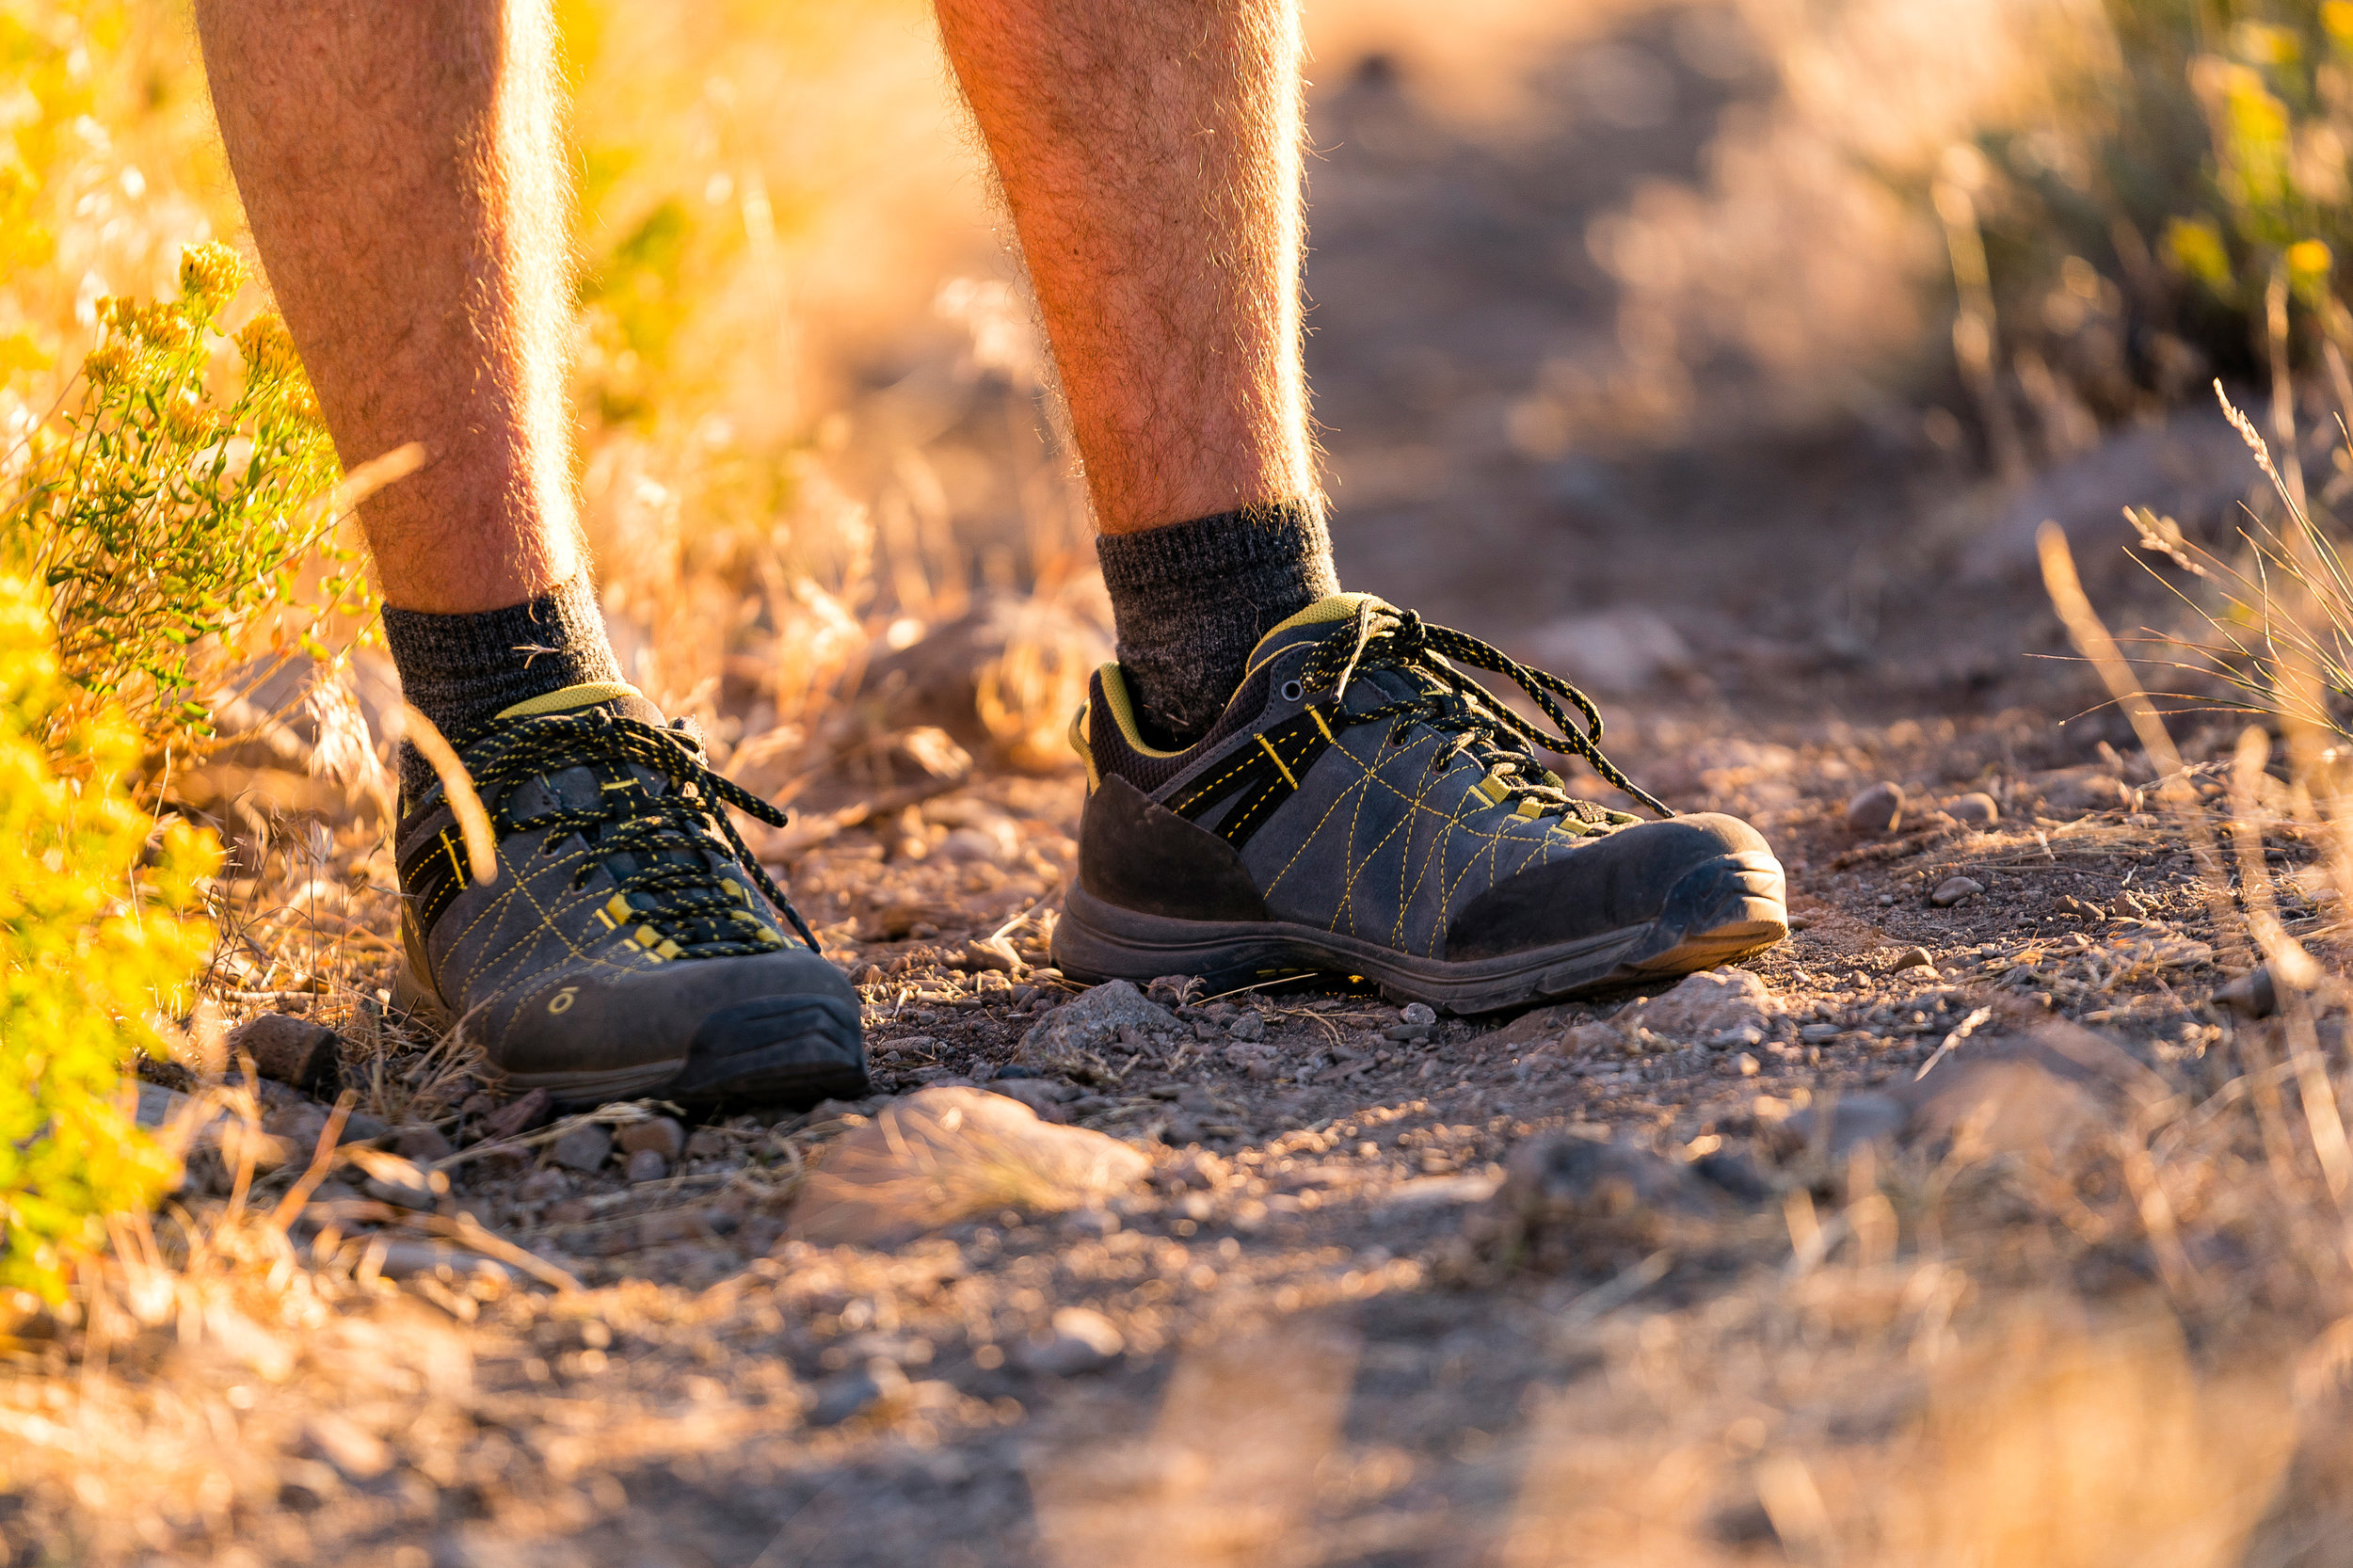 outdoor_lifestyle_Idaho_Ketchum_hiking_Stephen_matera_7-19-18_a9_DSC2609.jpg